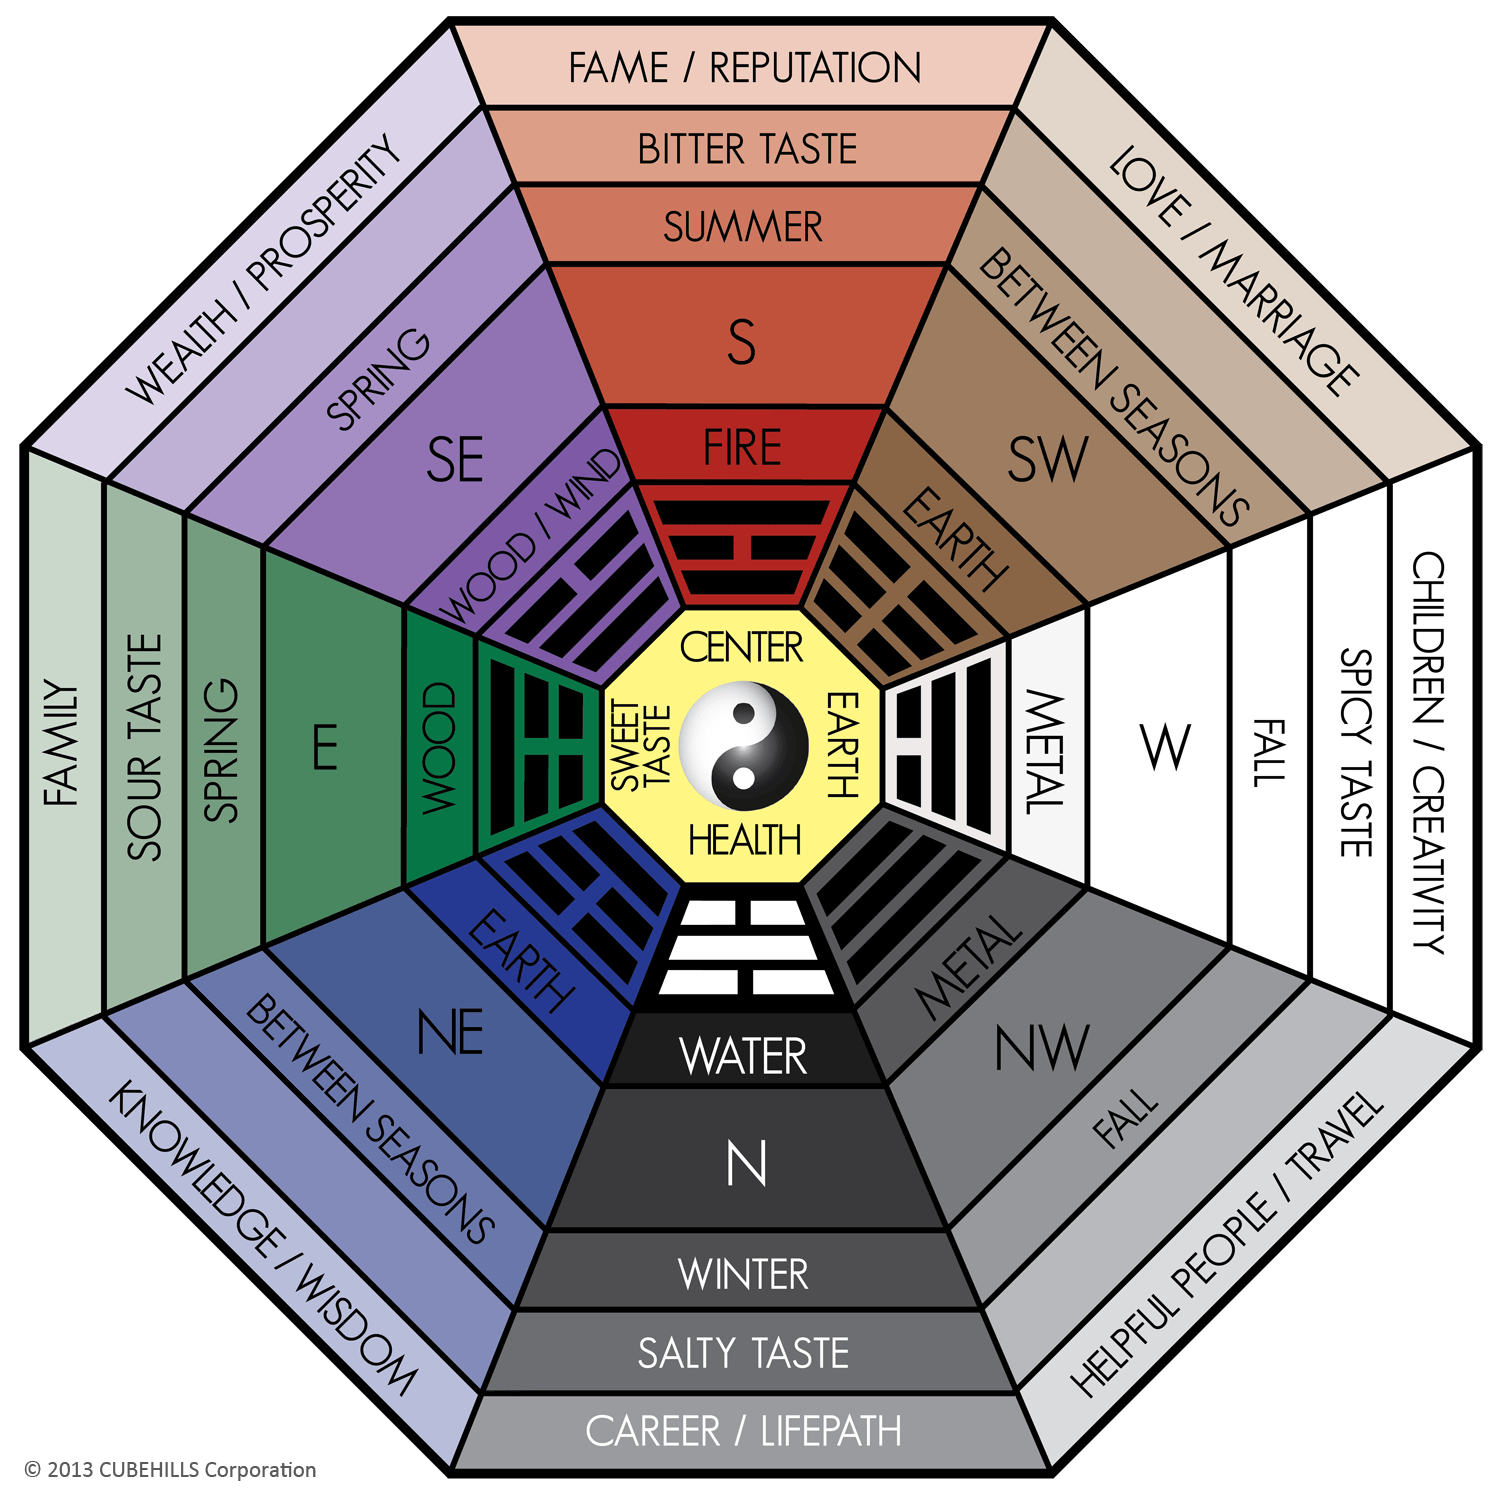 All About the Classical Feng Shui Bagua Home or Office  Pixel Media  Magic of Tidying Up and